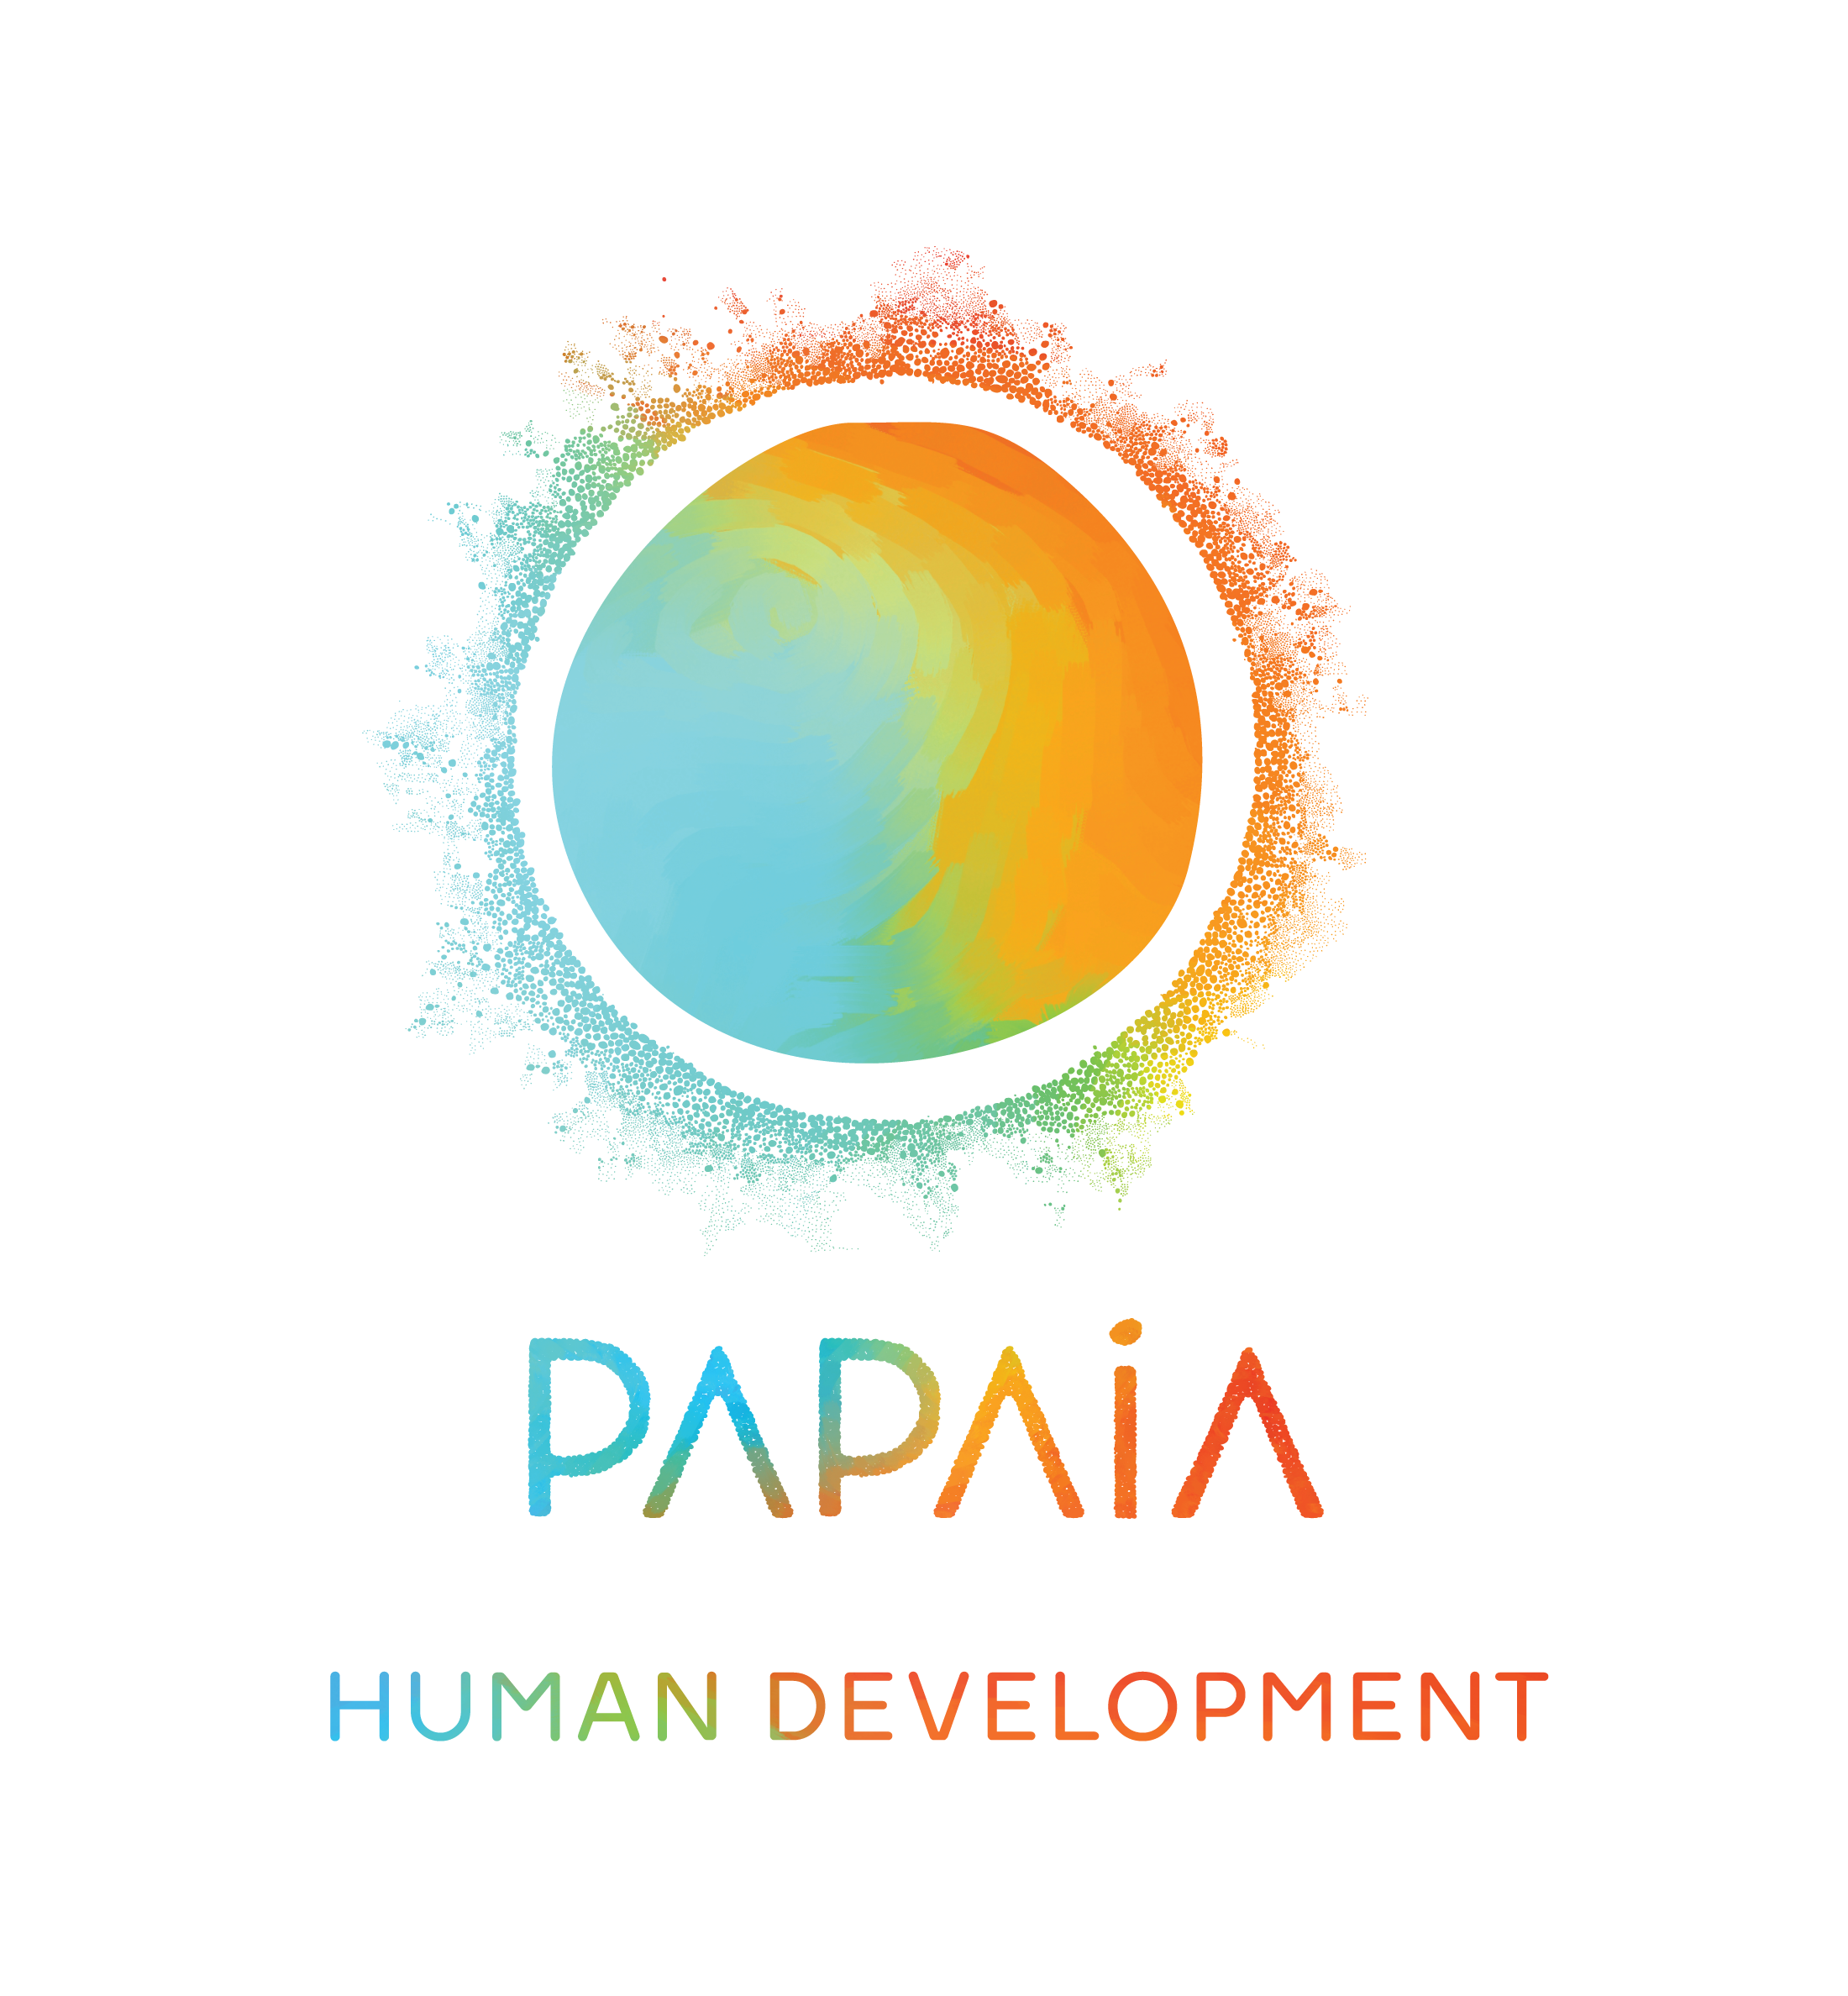 Papaia Human Development